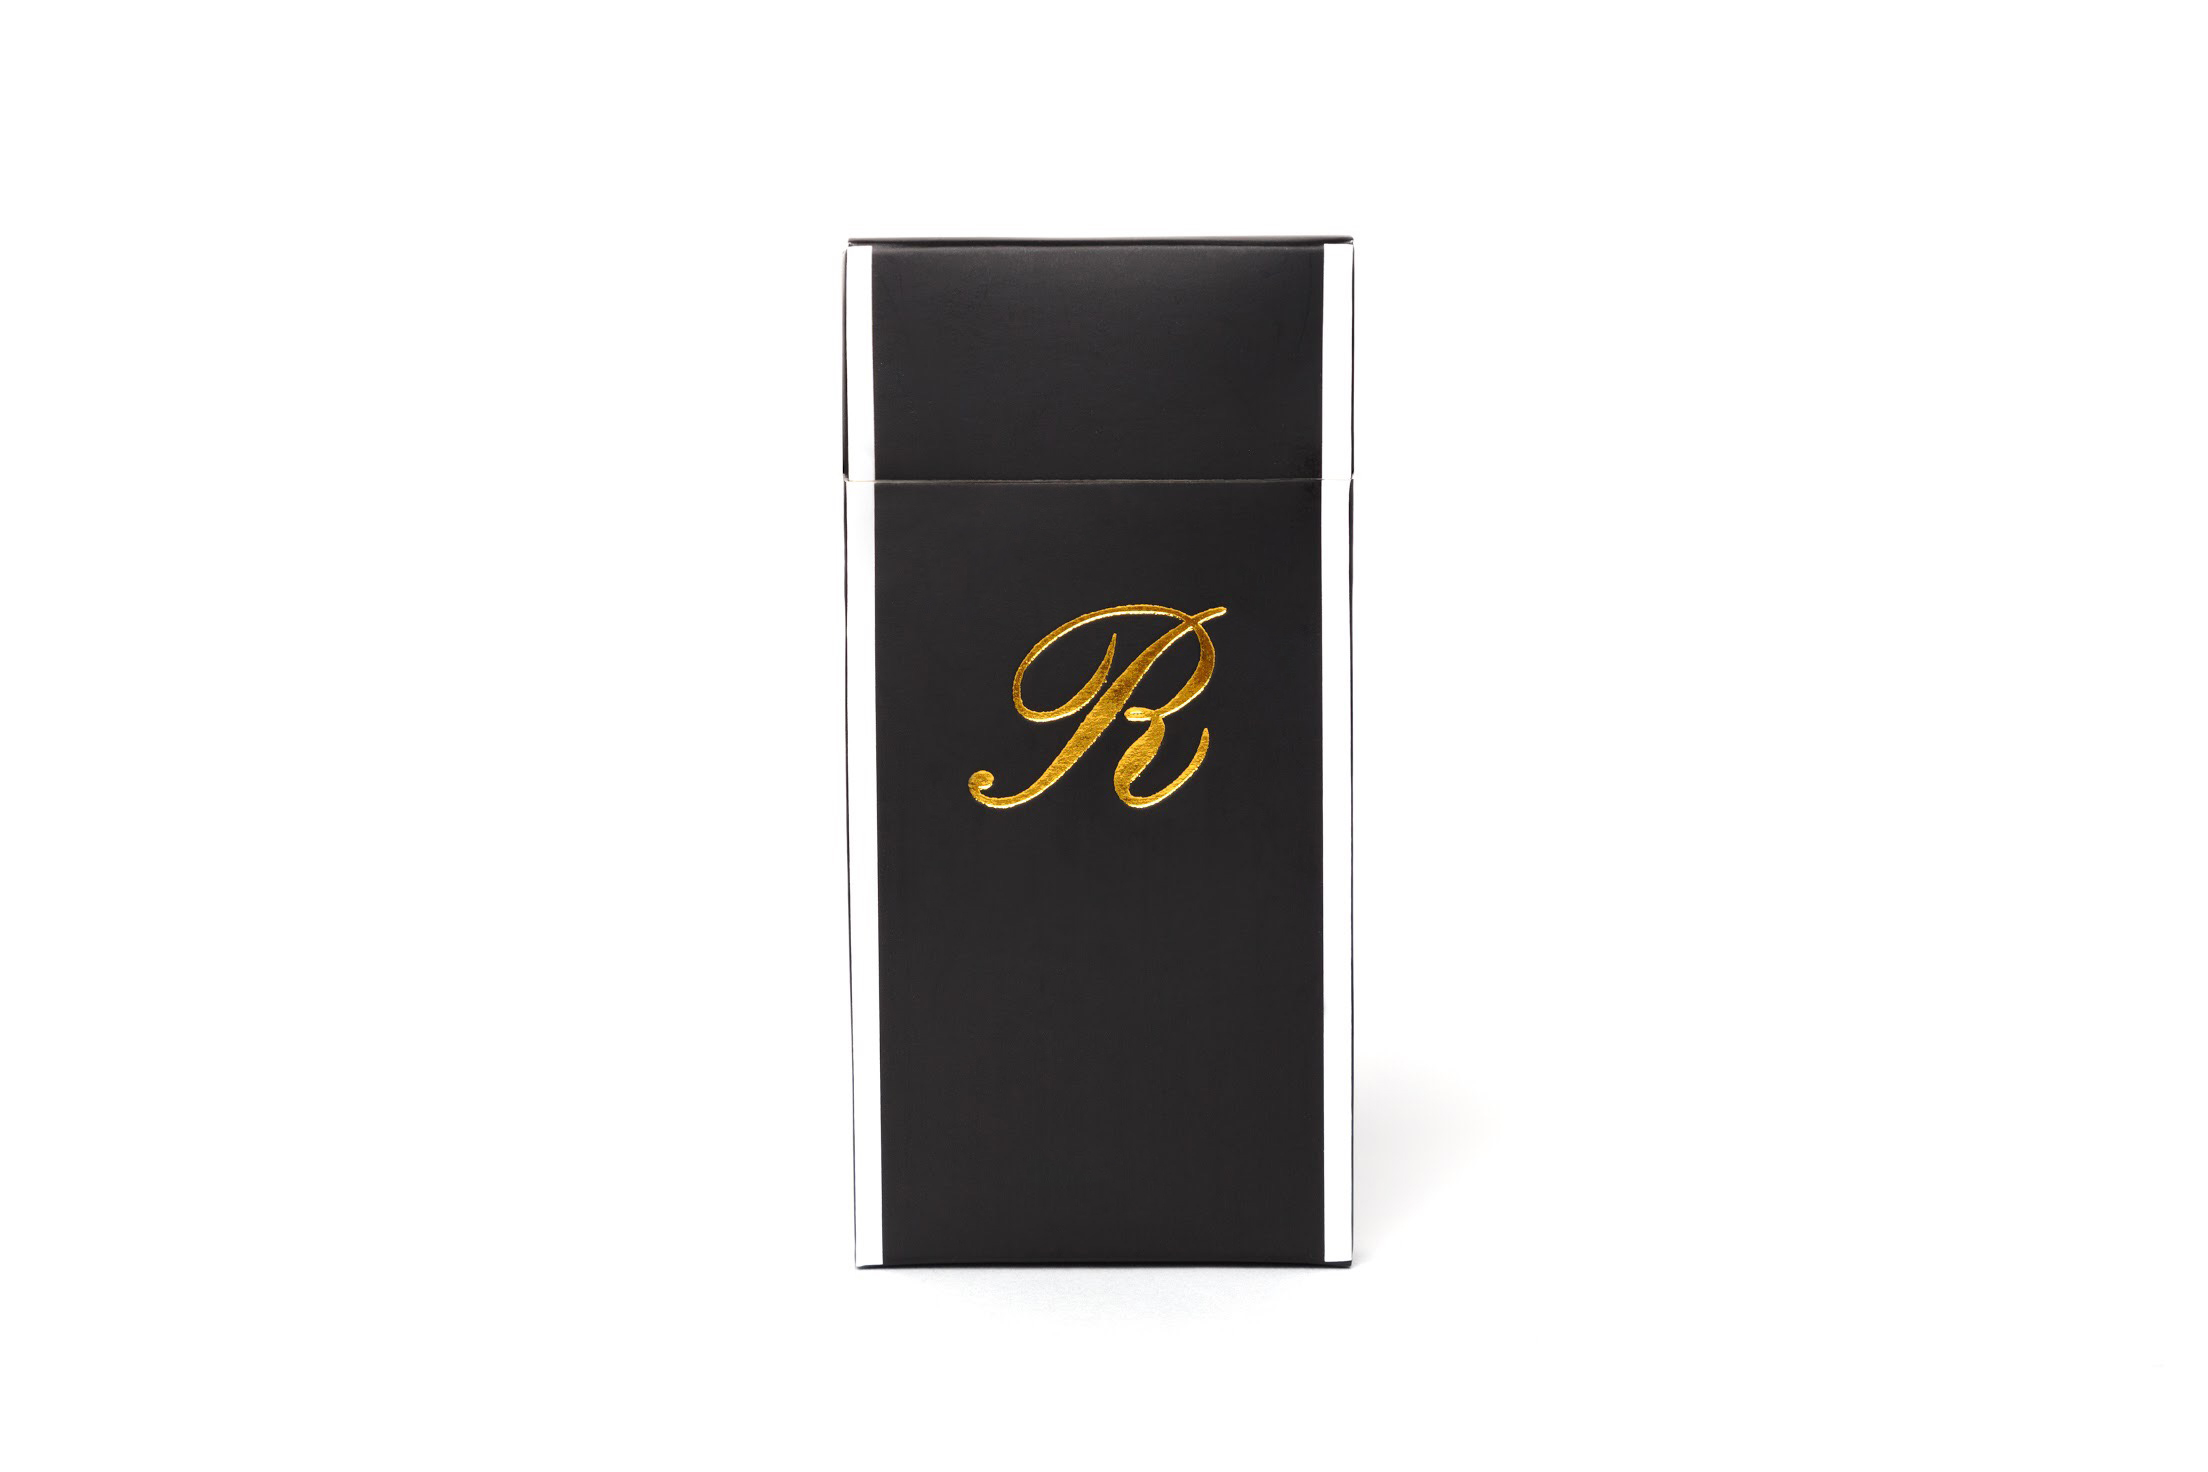 Rogers Original $25 (Sold Out)  - Rogers Orignals are a 5 pack of King Size Pre Roll Joints. Each pack contains 5.5 grams of high-quality cannabis. With our proprietary Hybrid blend (Sativa Dominant), we guarantee 20-23% THC. Every 25th pack of Rogers contains a 24k gold wrapped joint thanks to our friends at Shine Papers.